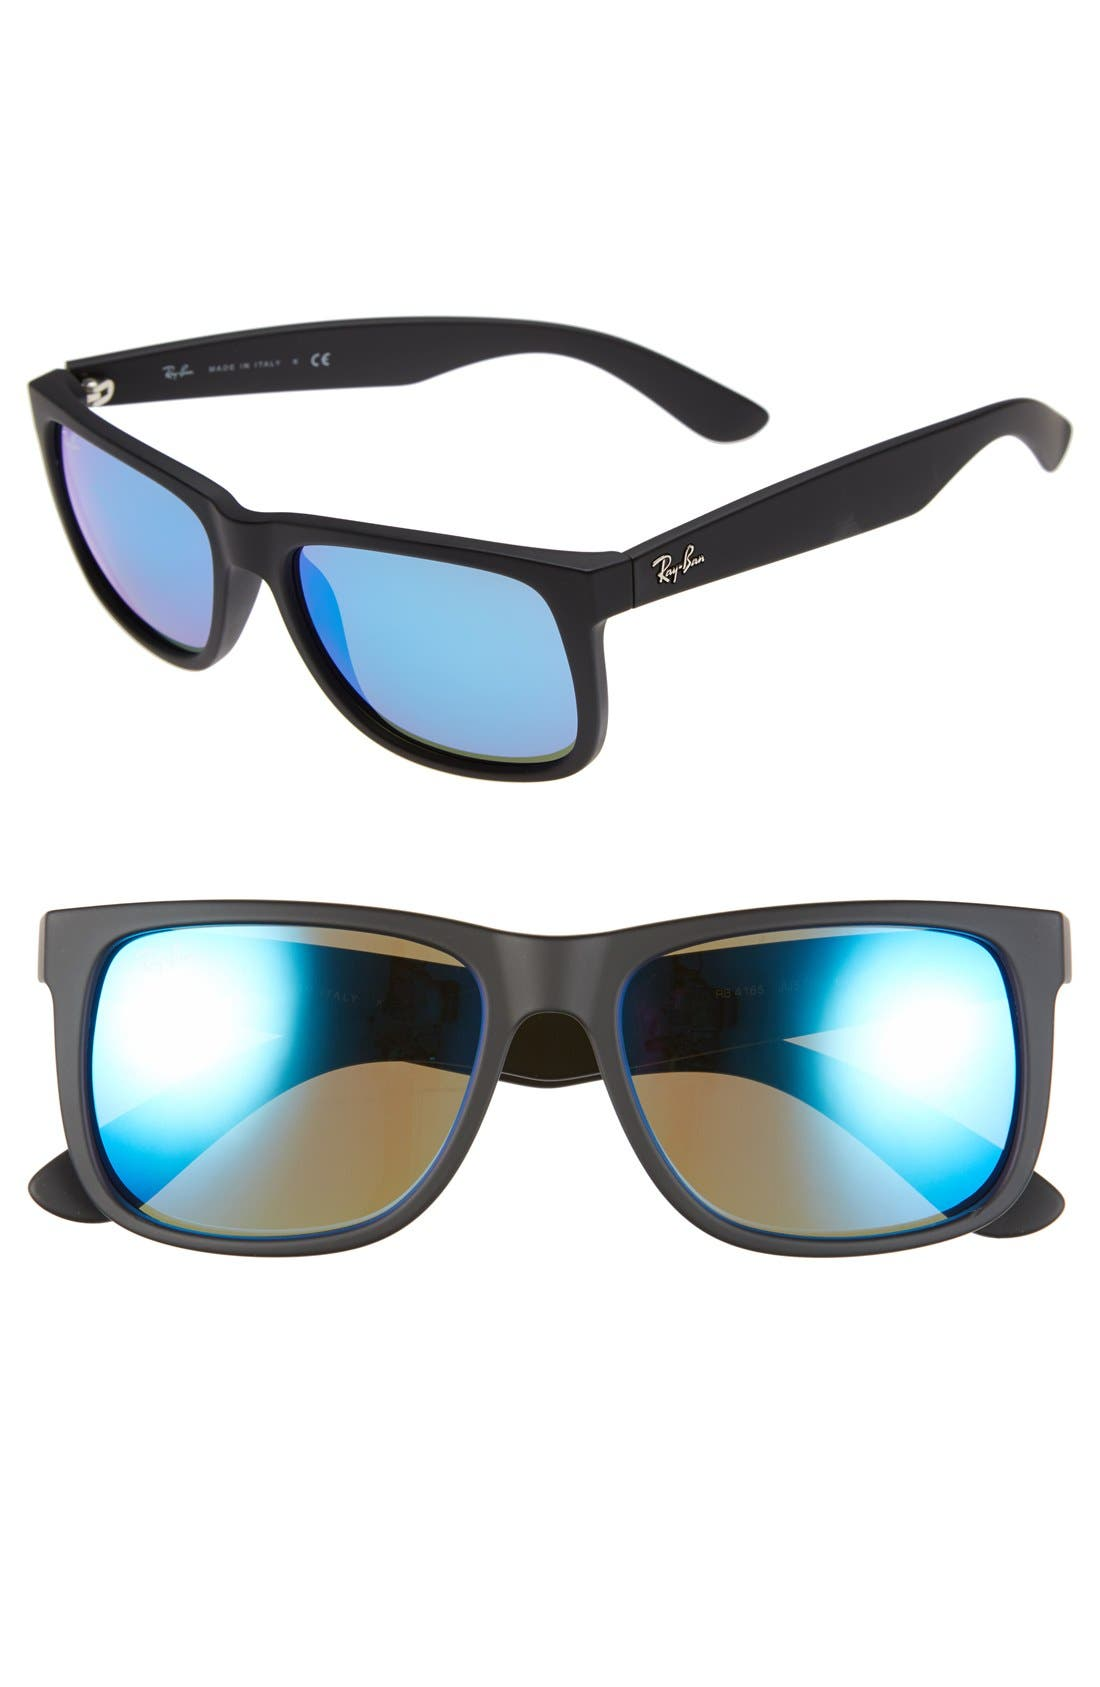 Ray-Ban 5m Sunglasses - Black/ Green Mirror Blue